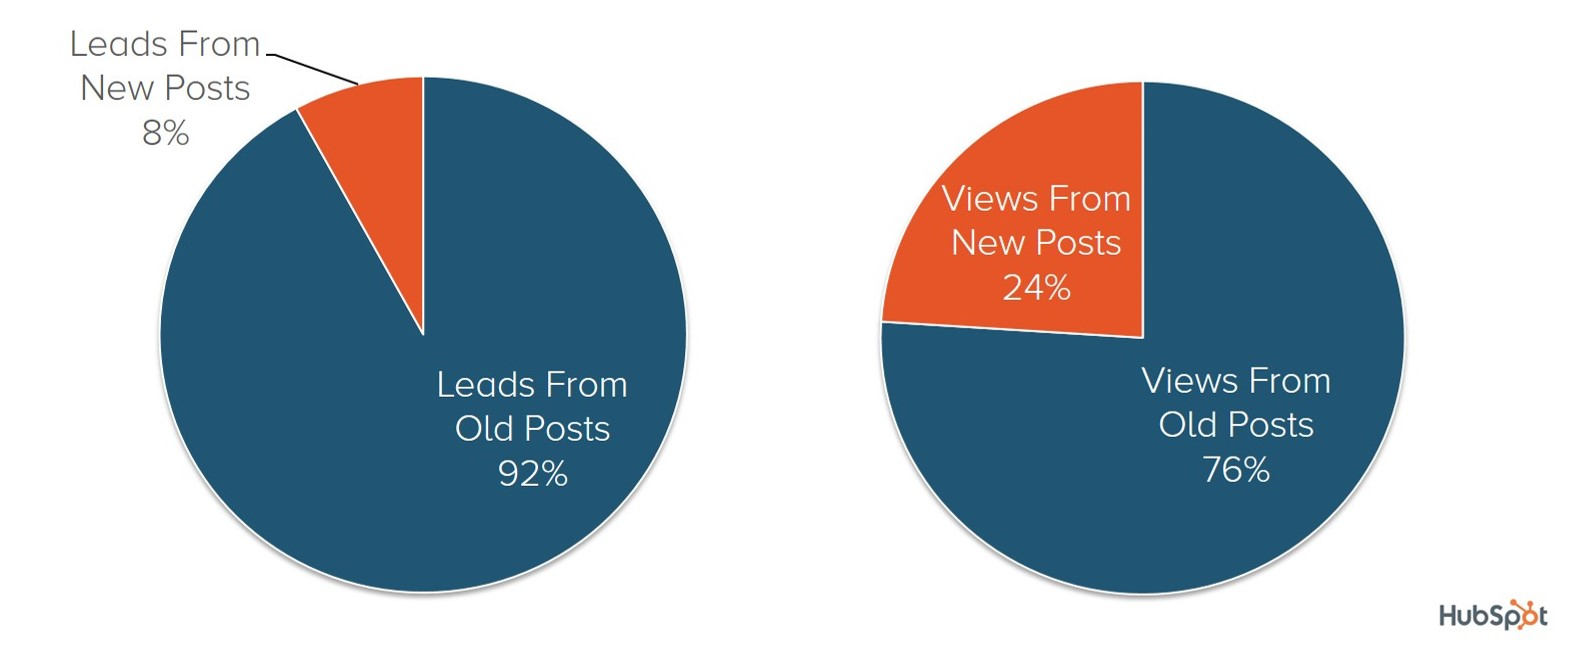 old posts leads traffic